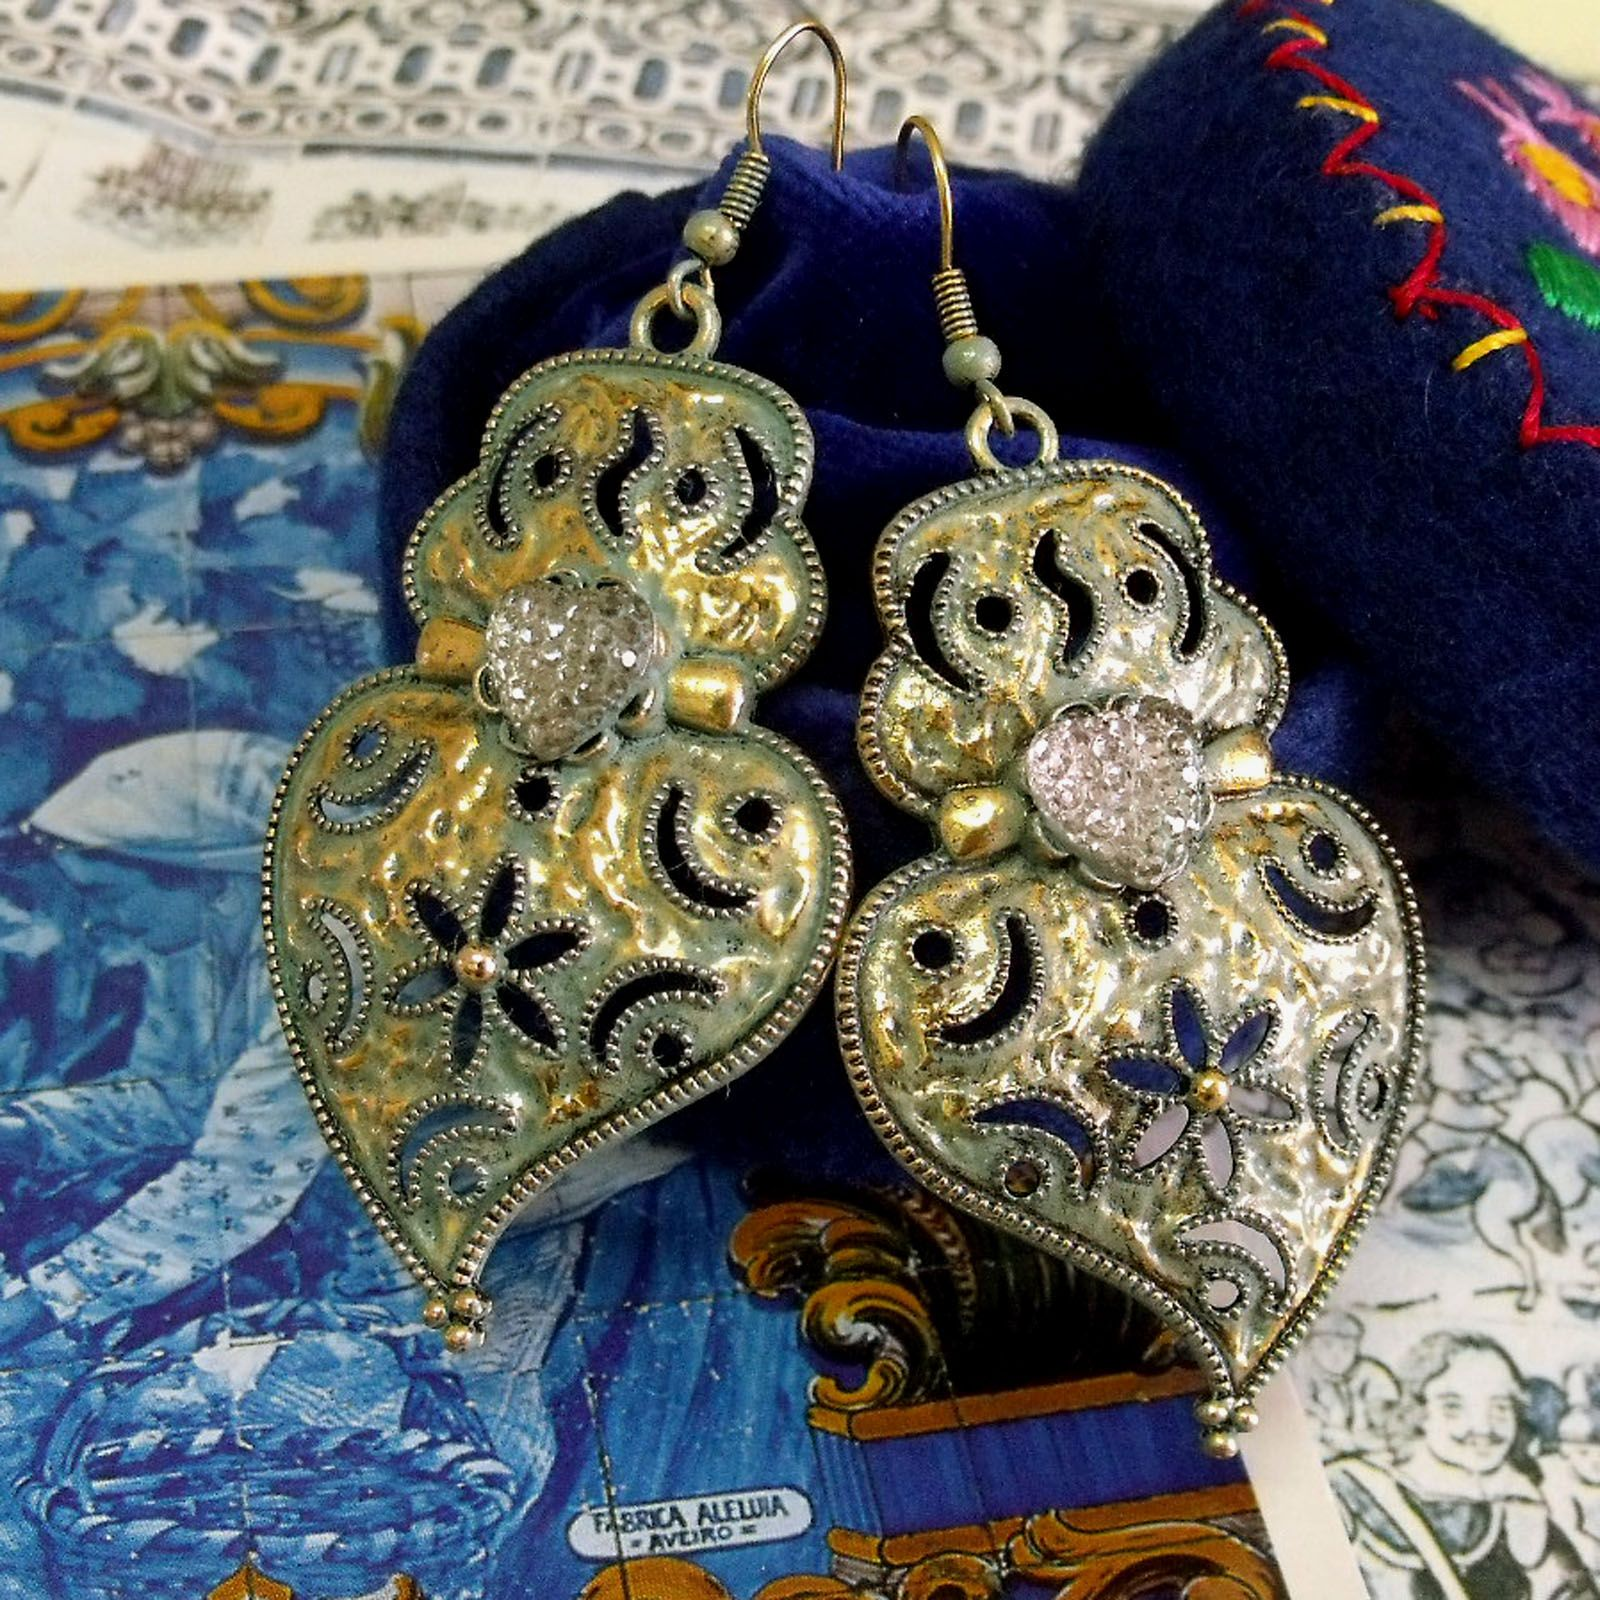 Portuguese folk jewelry Hearts of Viana gold tone earrings with verdigris and frosted heart. It is my modern aged version of the traditional style lacy hearts dangle earrings.$39.00...#portuguesefolkjewelry#portugalvianahearts#portuguesefolkart#madeinPortugal#bigheartearrings#verdigrisjewelry